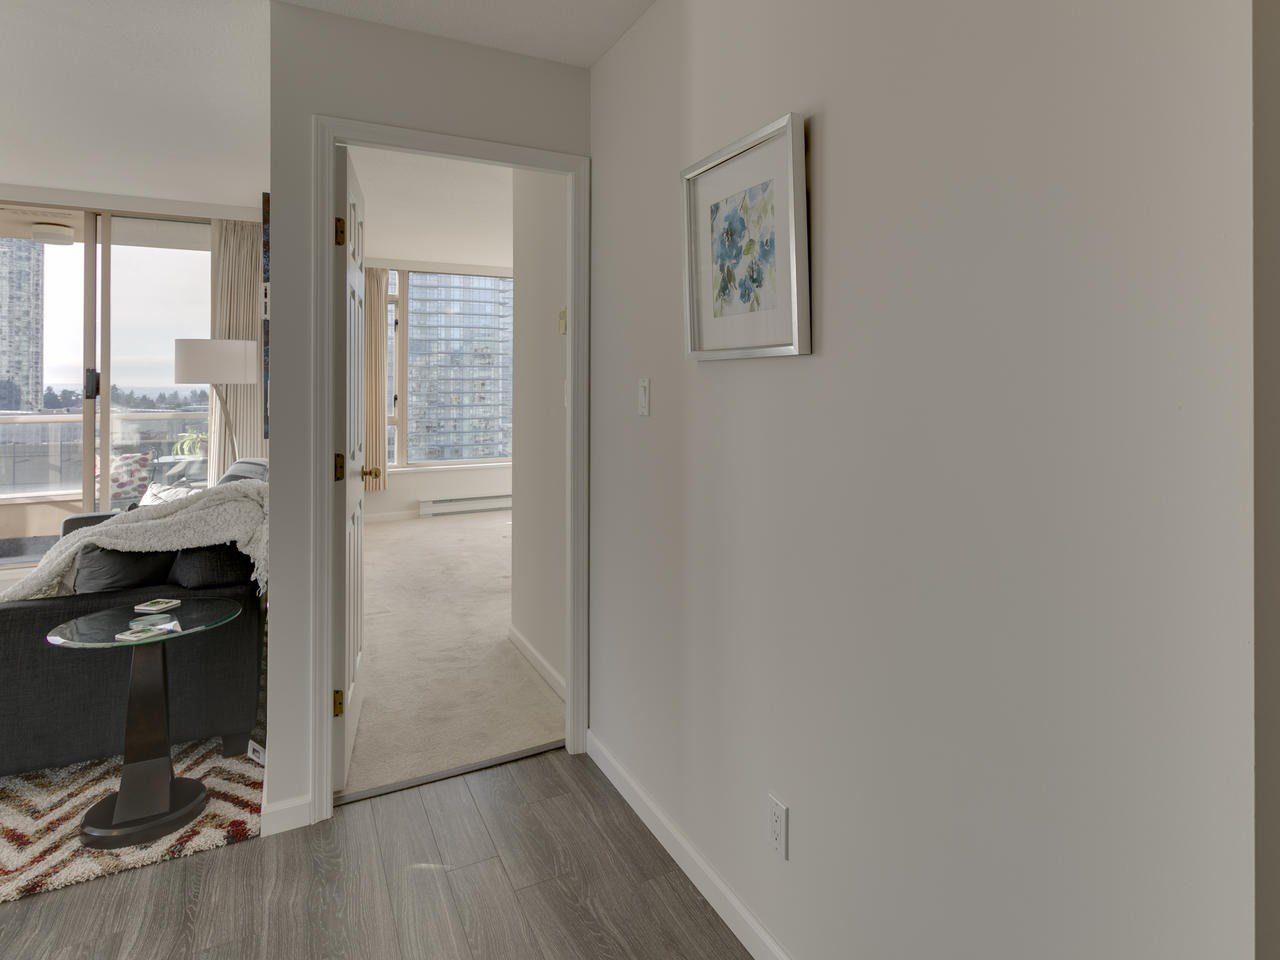 "Photo 13: Photos: 1503 4657 HAZEL Street in Burnaby: Forest Glen BS Condo for sale in ""THE LEXINGTON"" (Burnaby South)  : MLS®# R2434889"